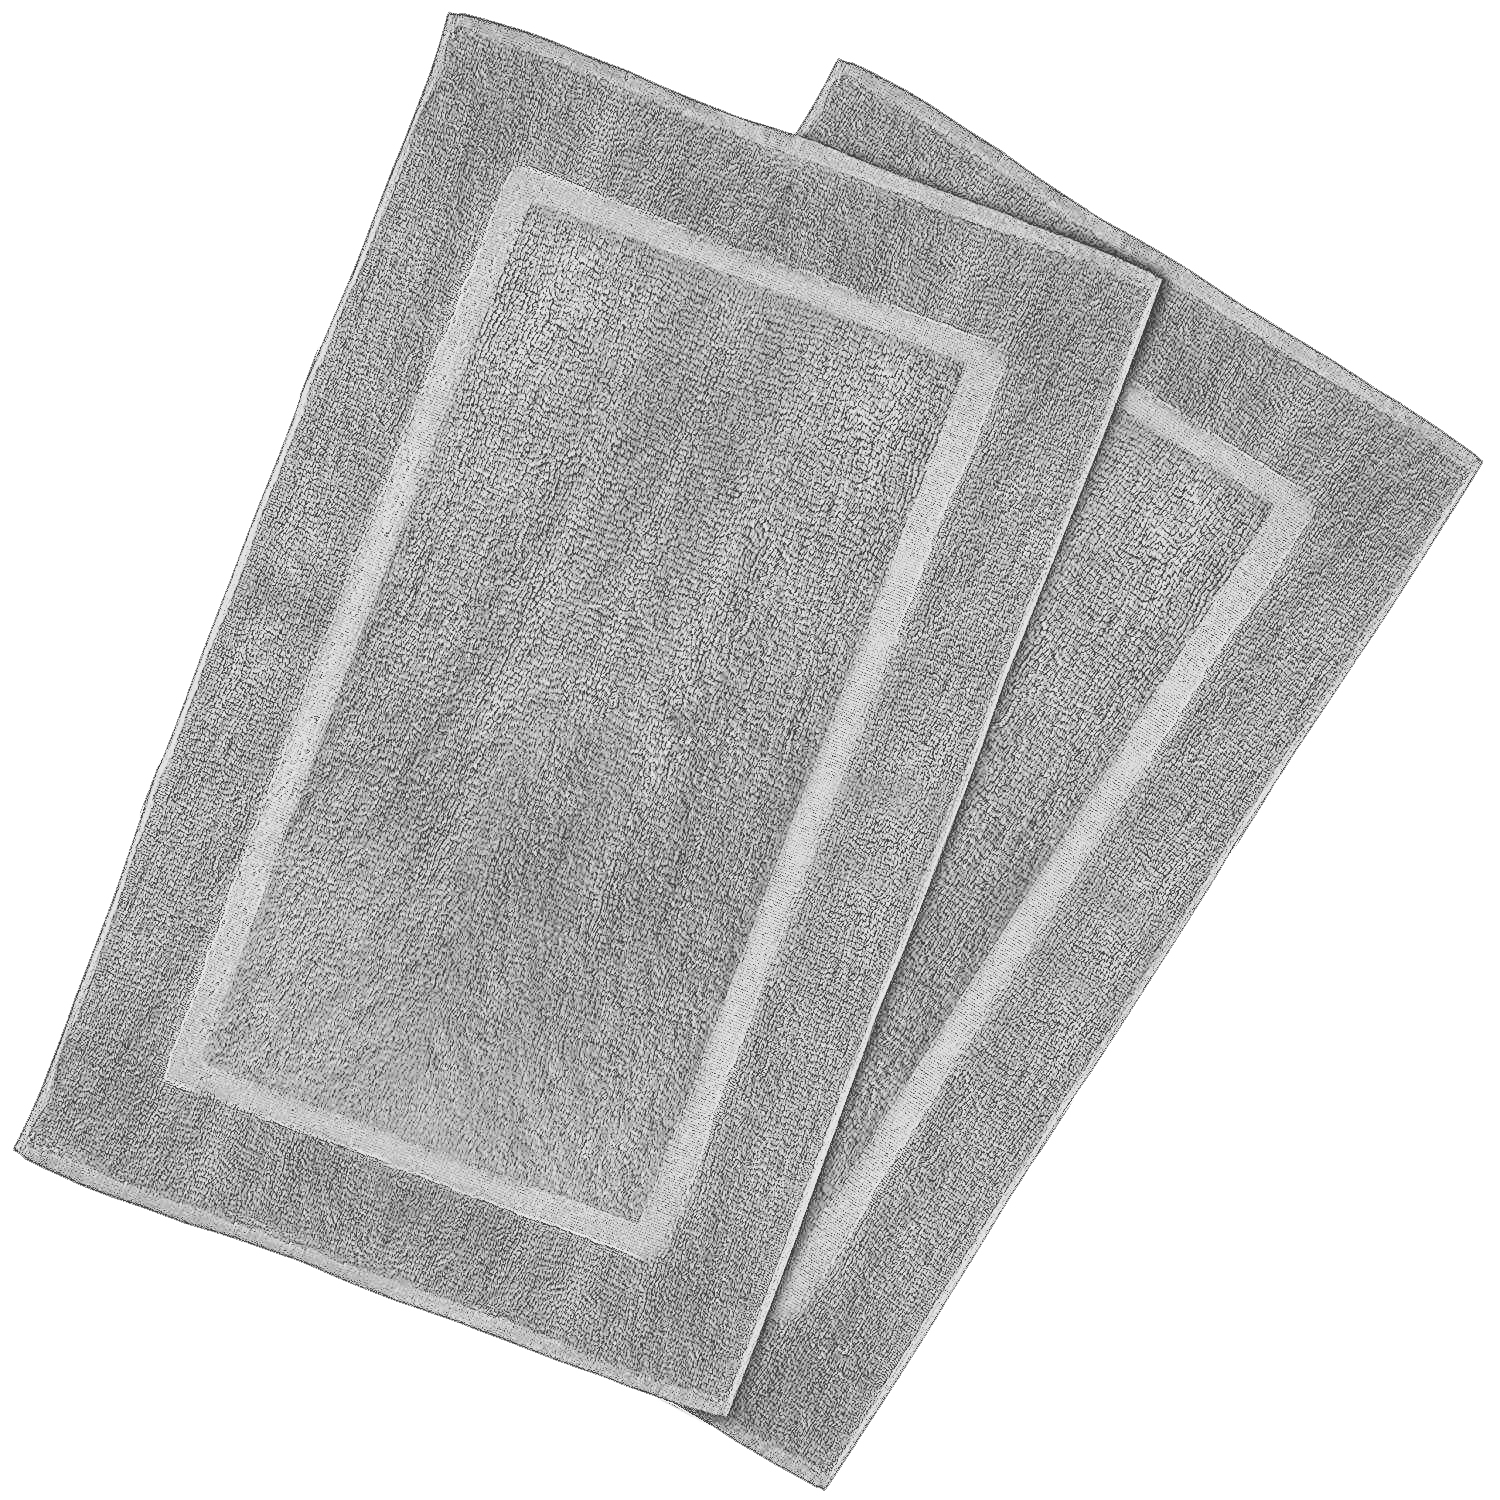 Goza Towels Cotton Bath Mat 2 Pack, 20 x 31 inches